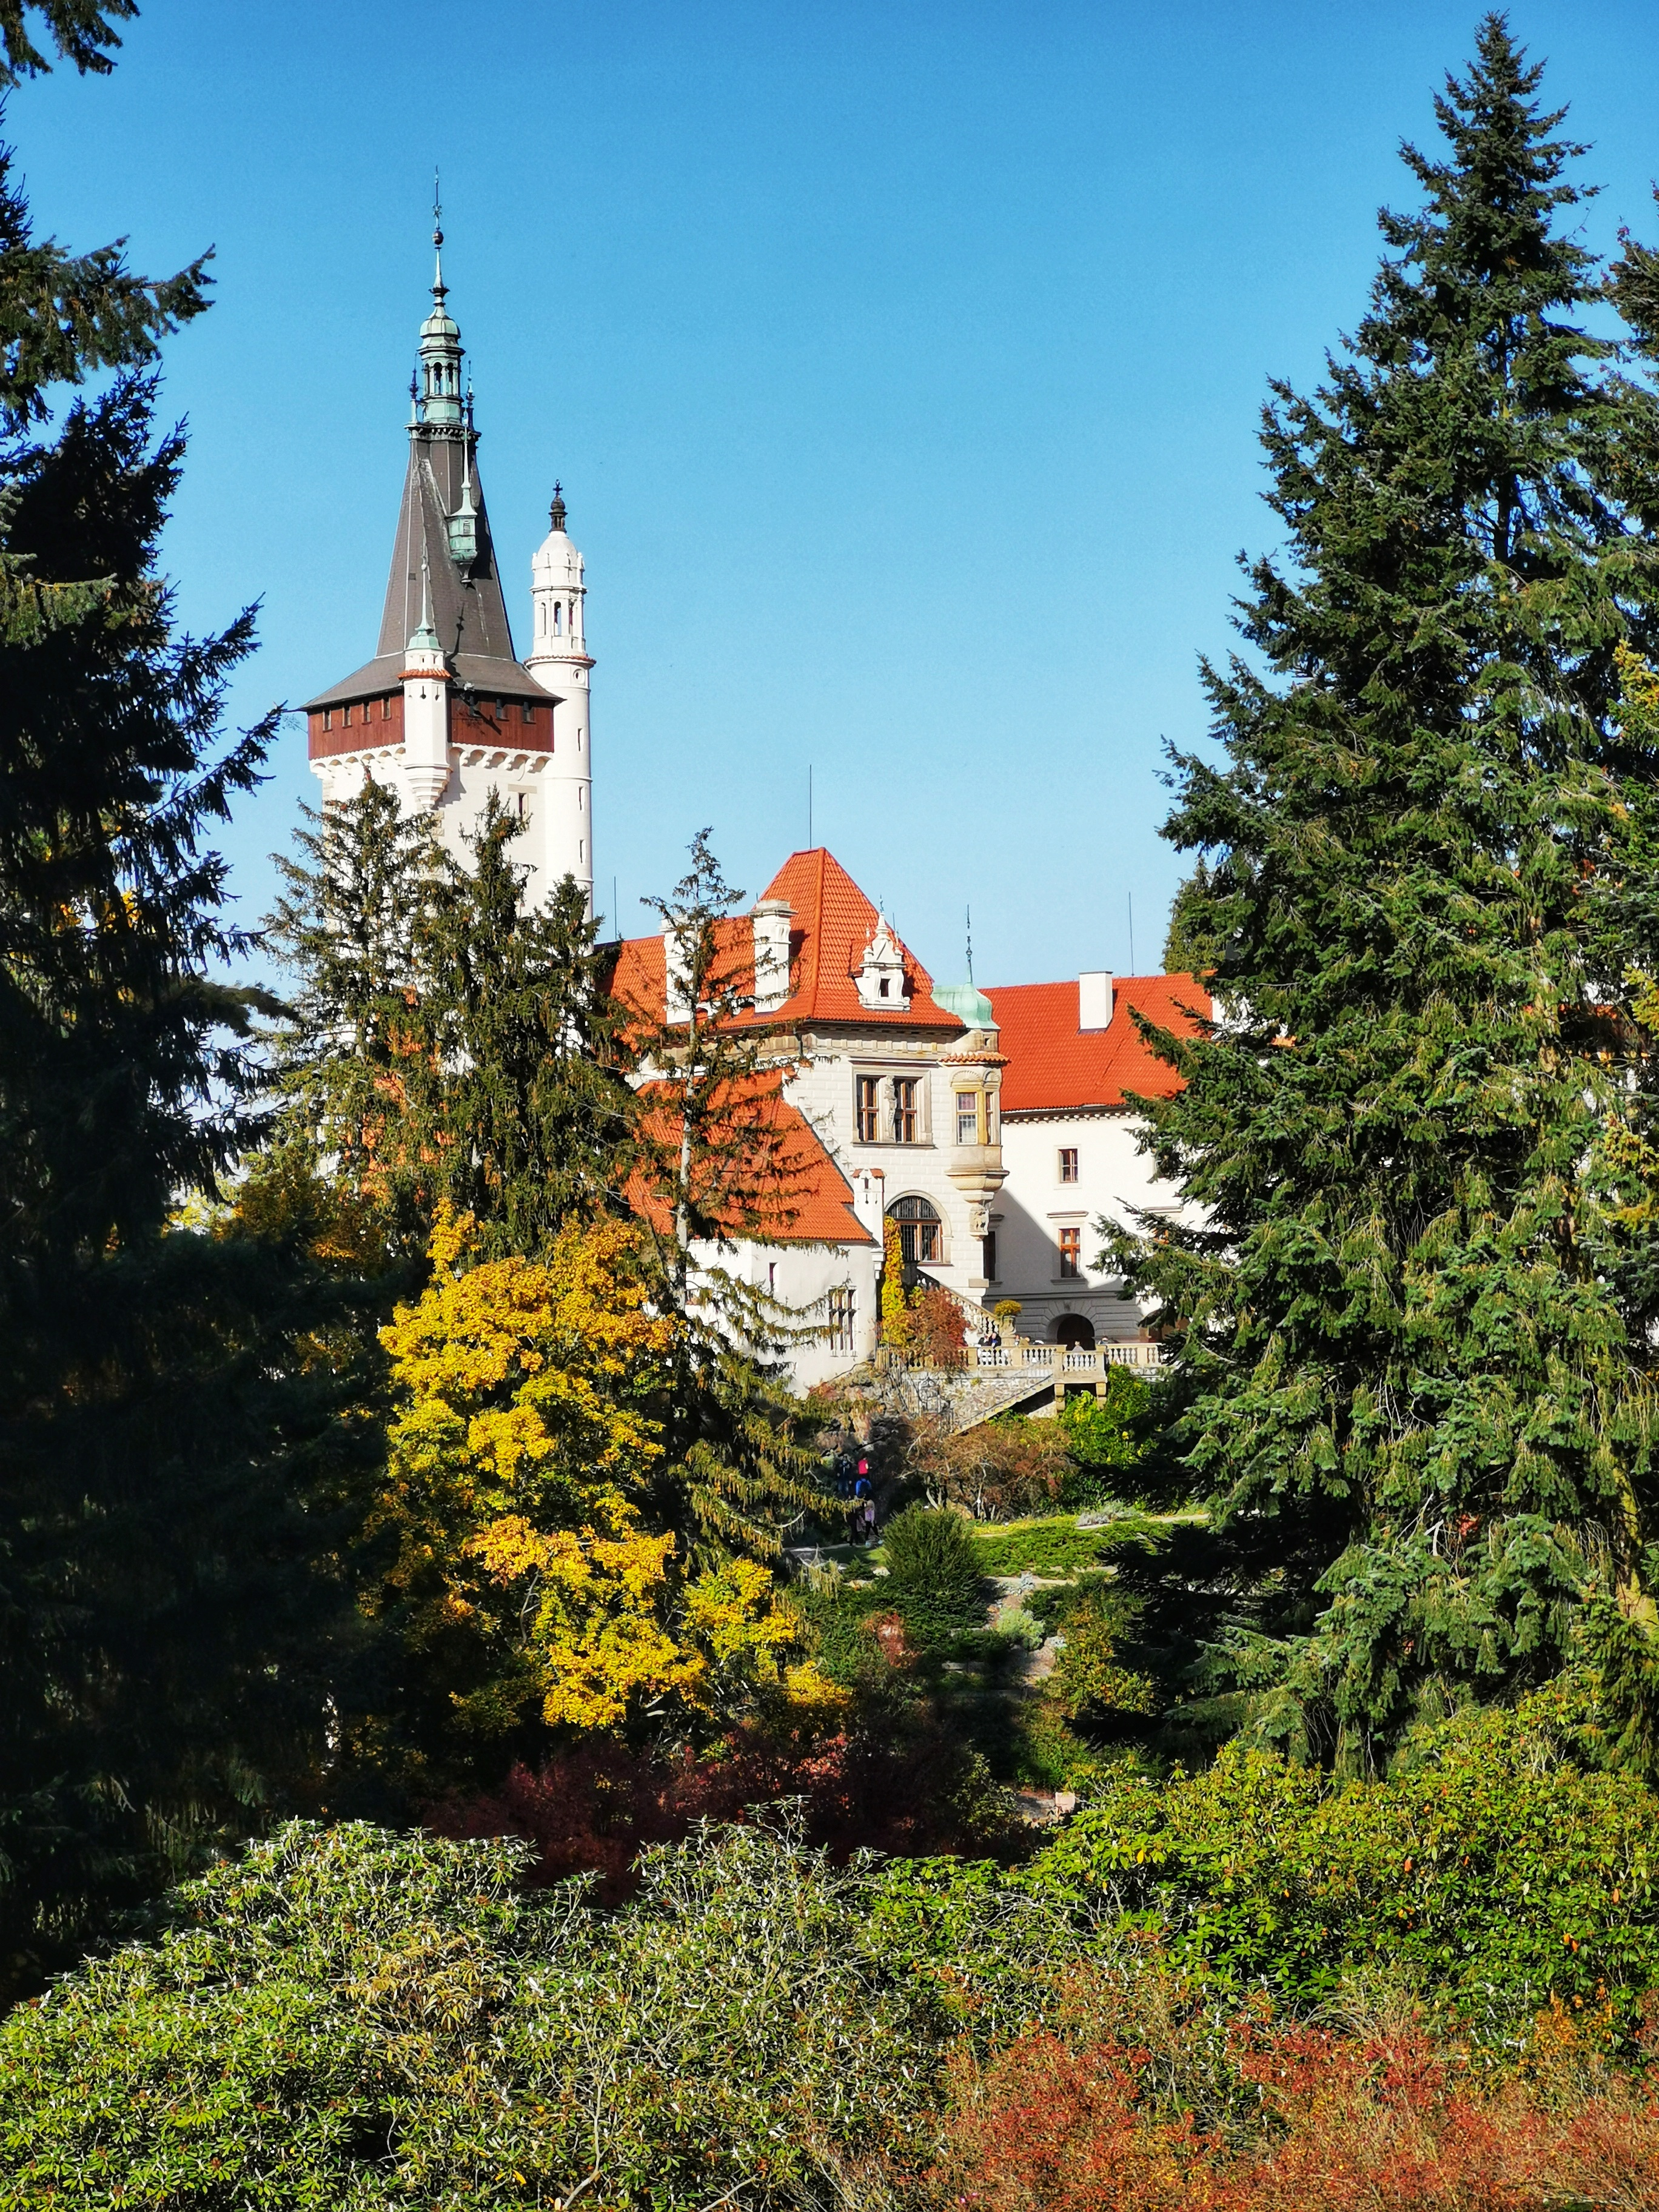 The current appearance of The Průhonice Castle dates to the late 19th century.